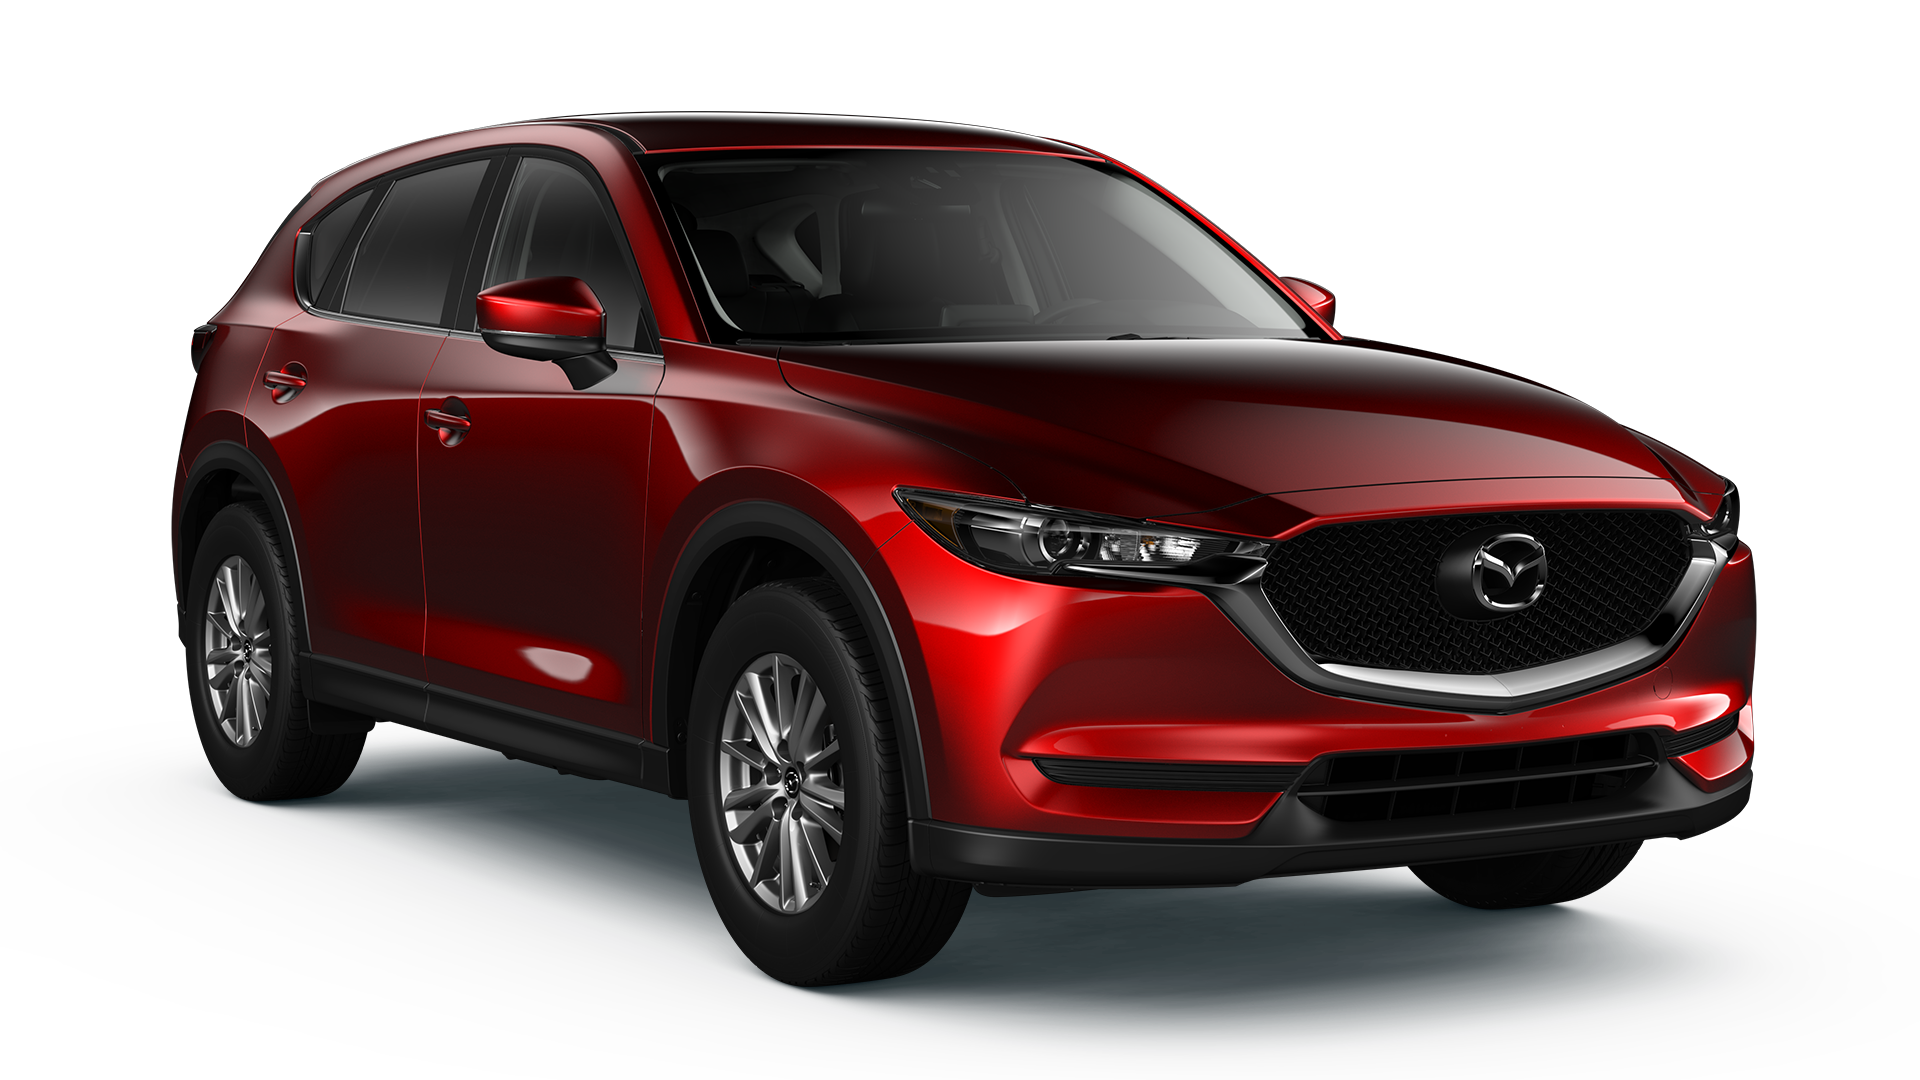 gt of sport expert test awd mazda review cx drive